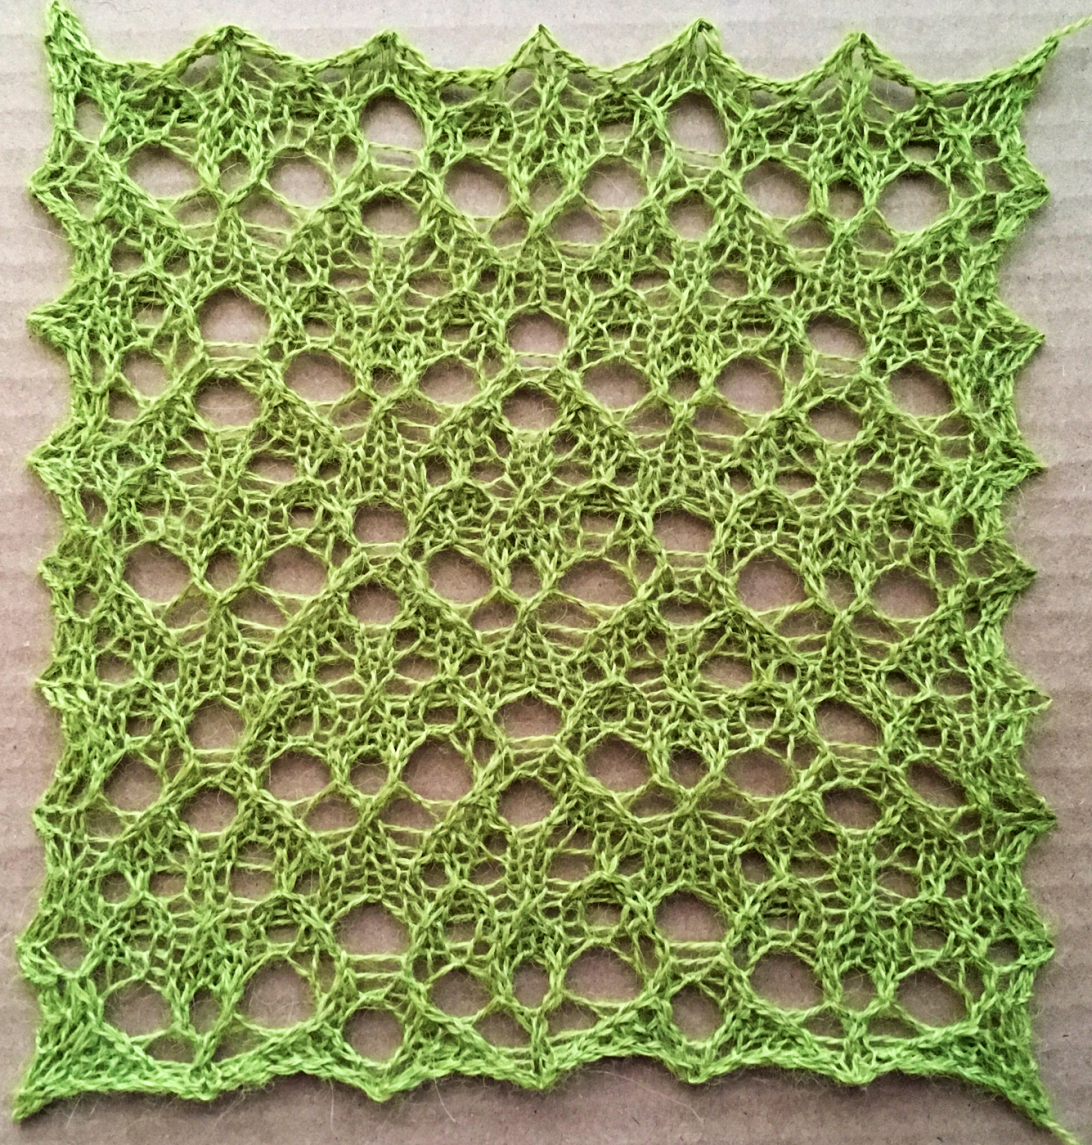 Gritty: a free lace knitting stitch pattern